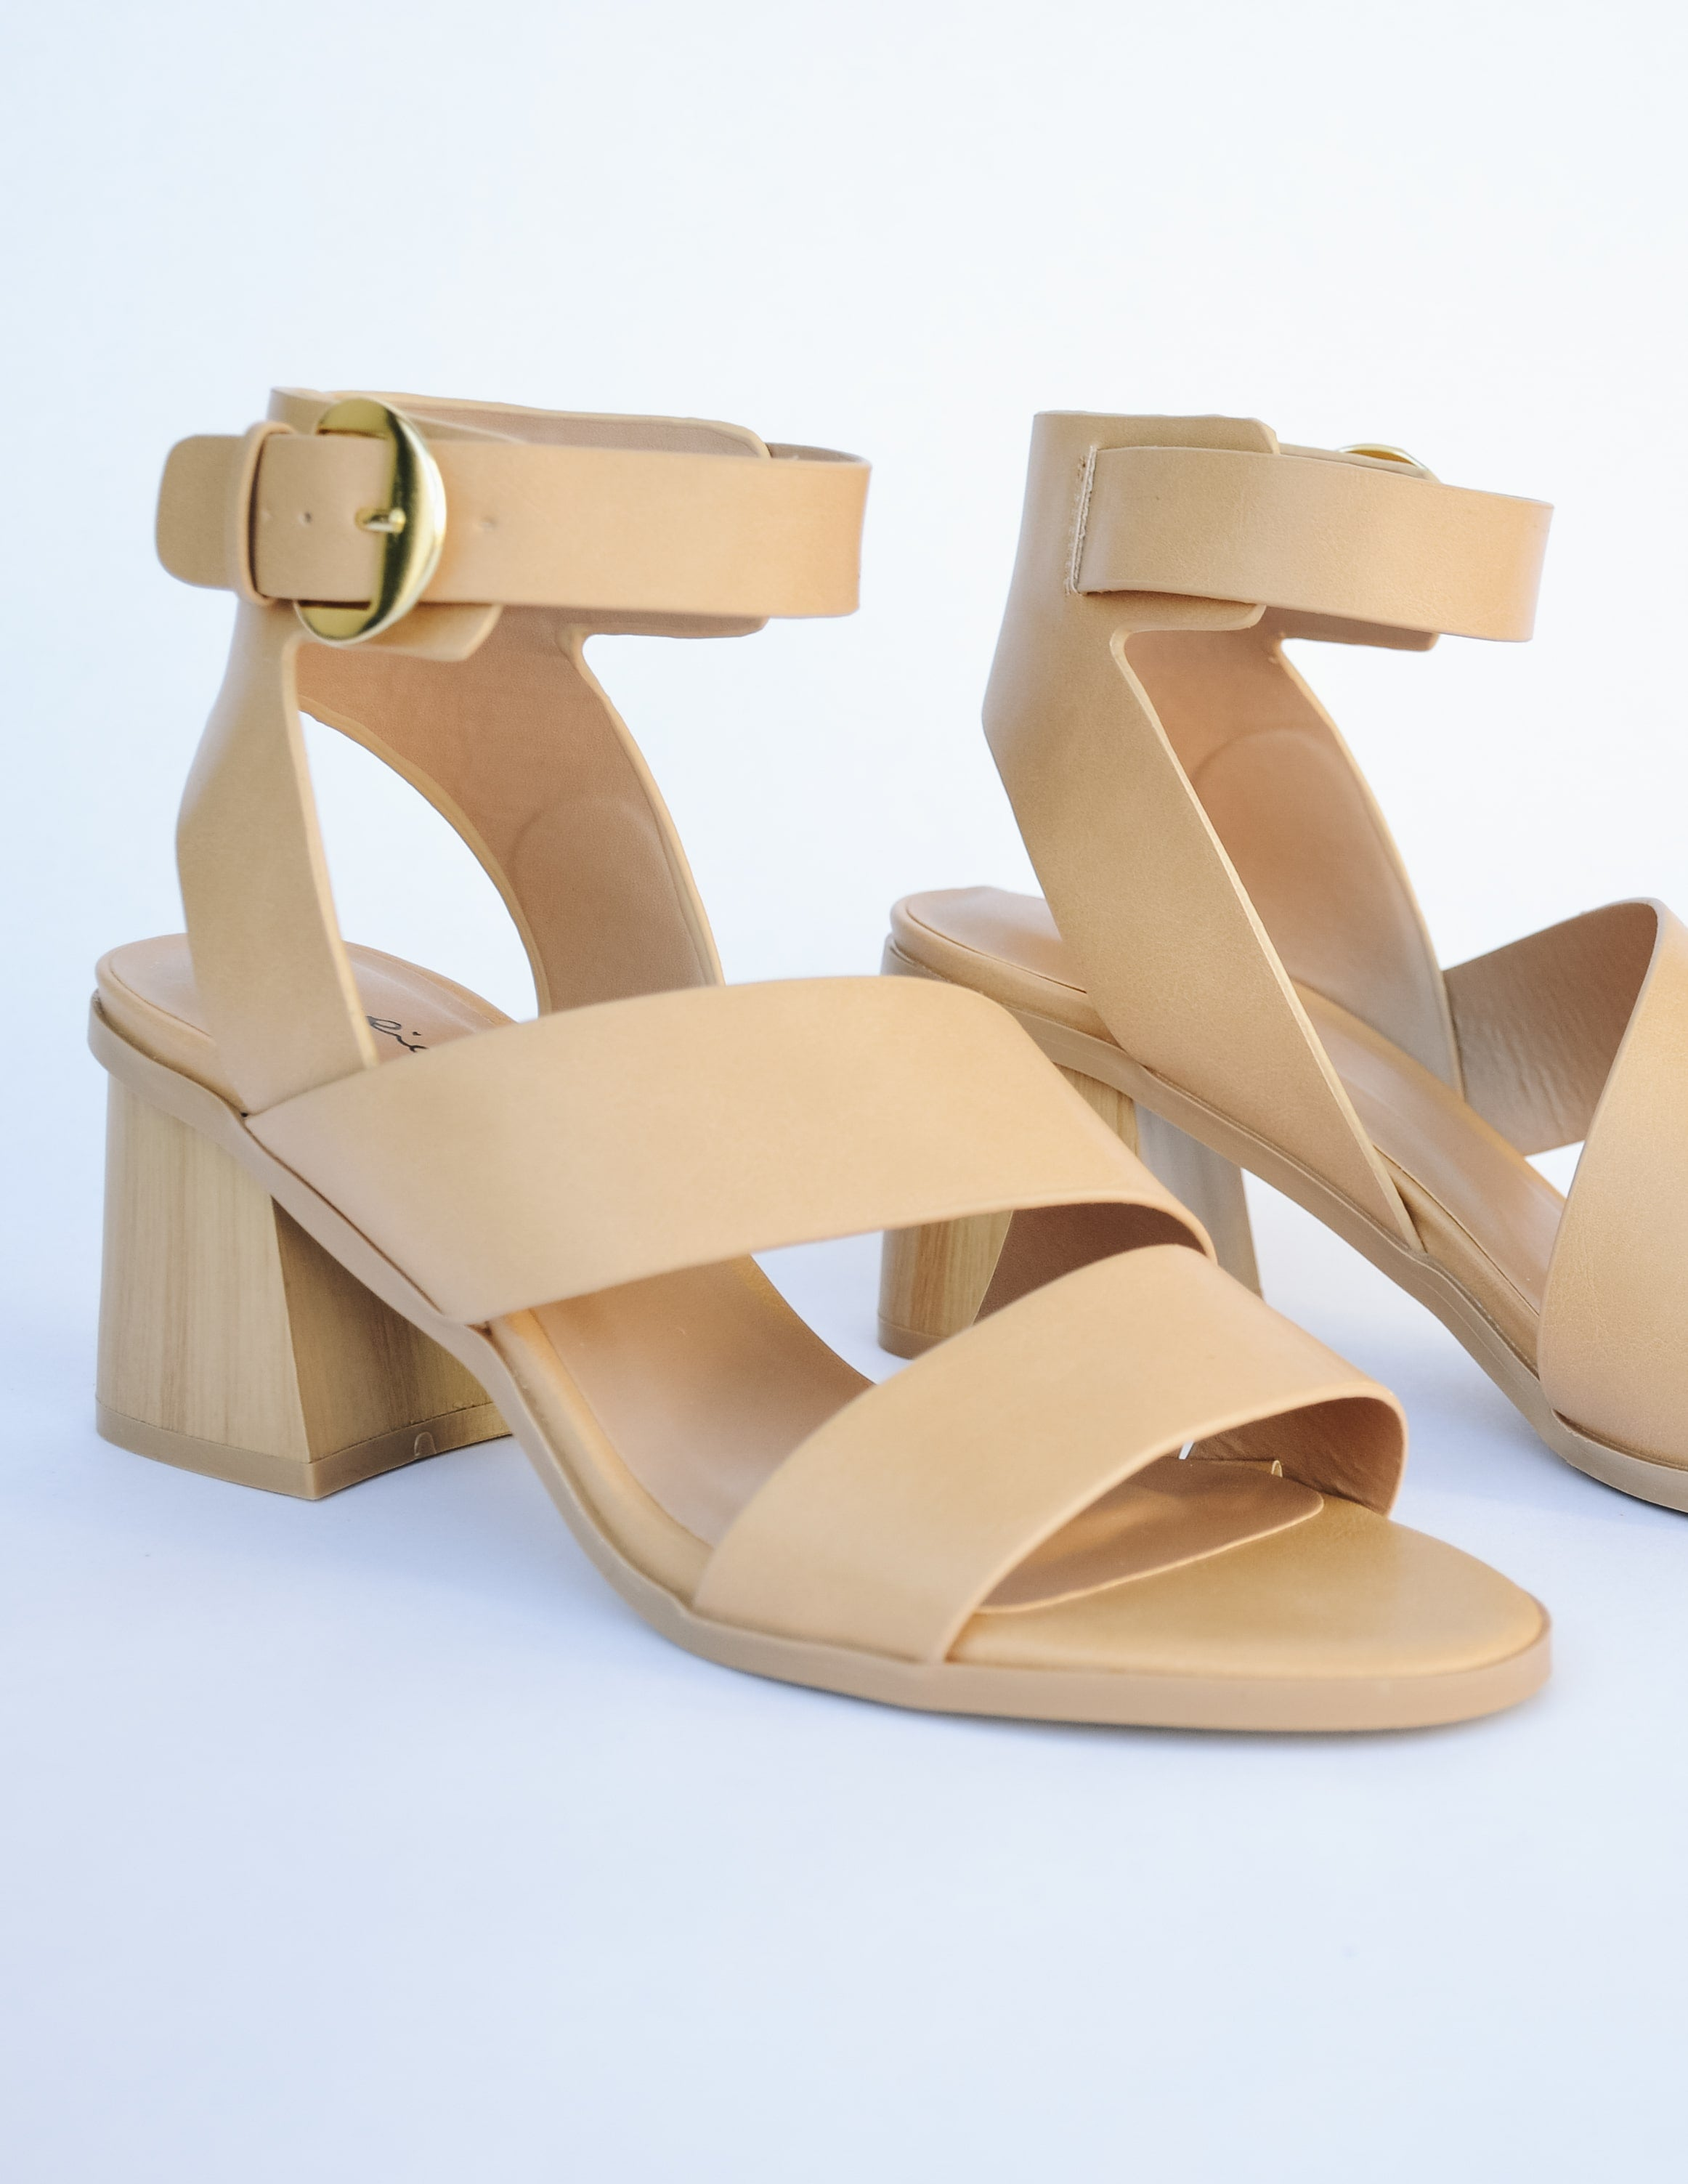 Side view of the heel showing light tan strap details and open toe